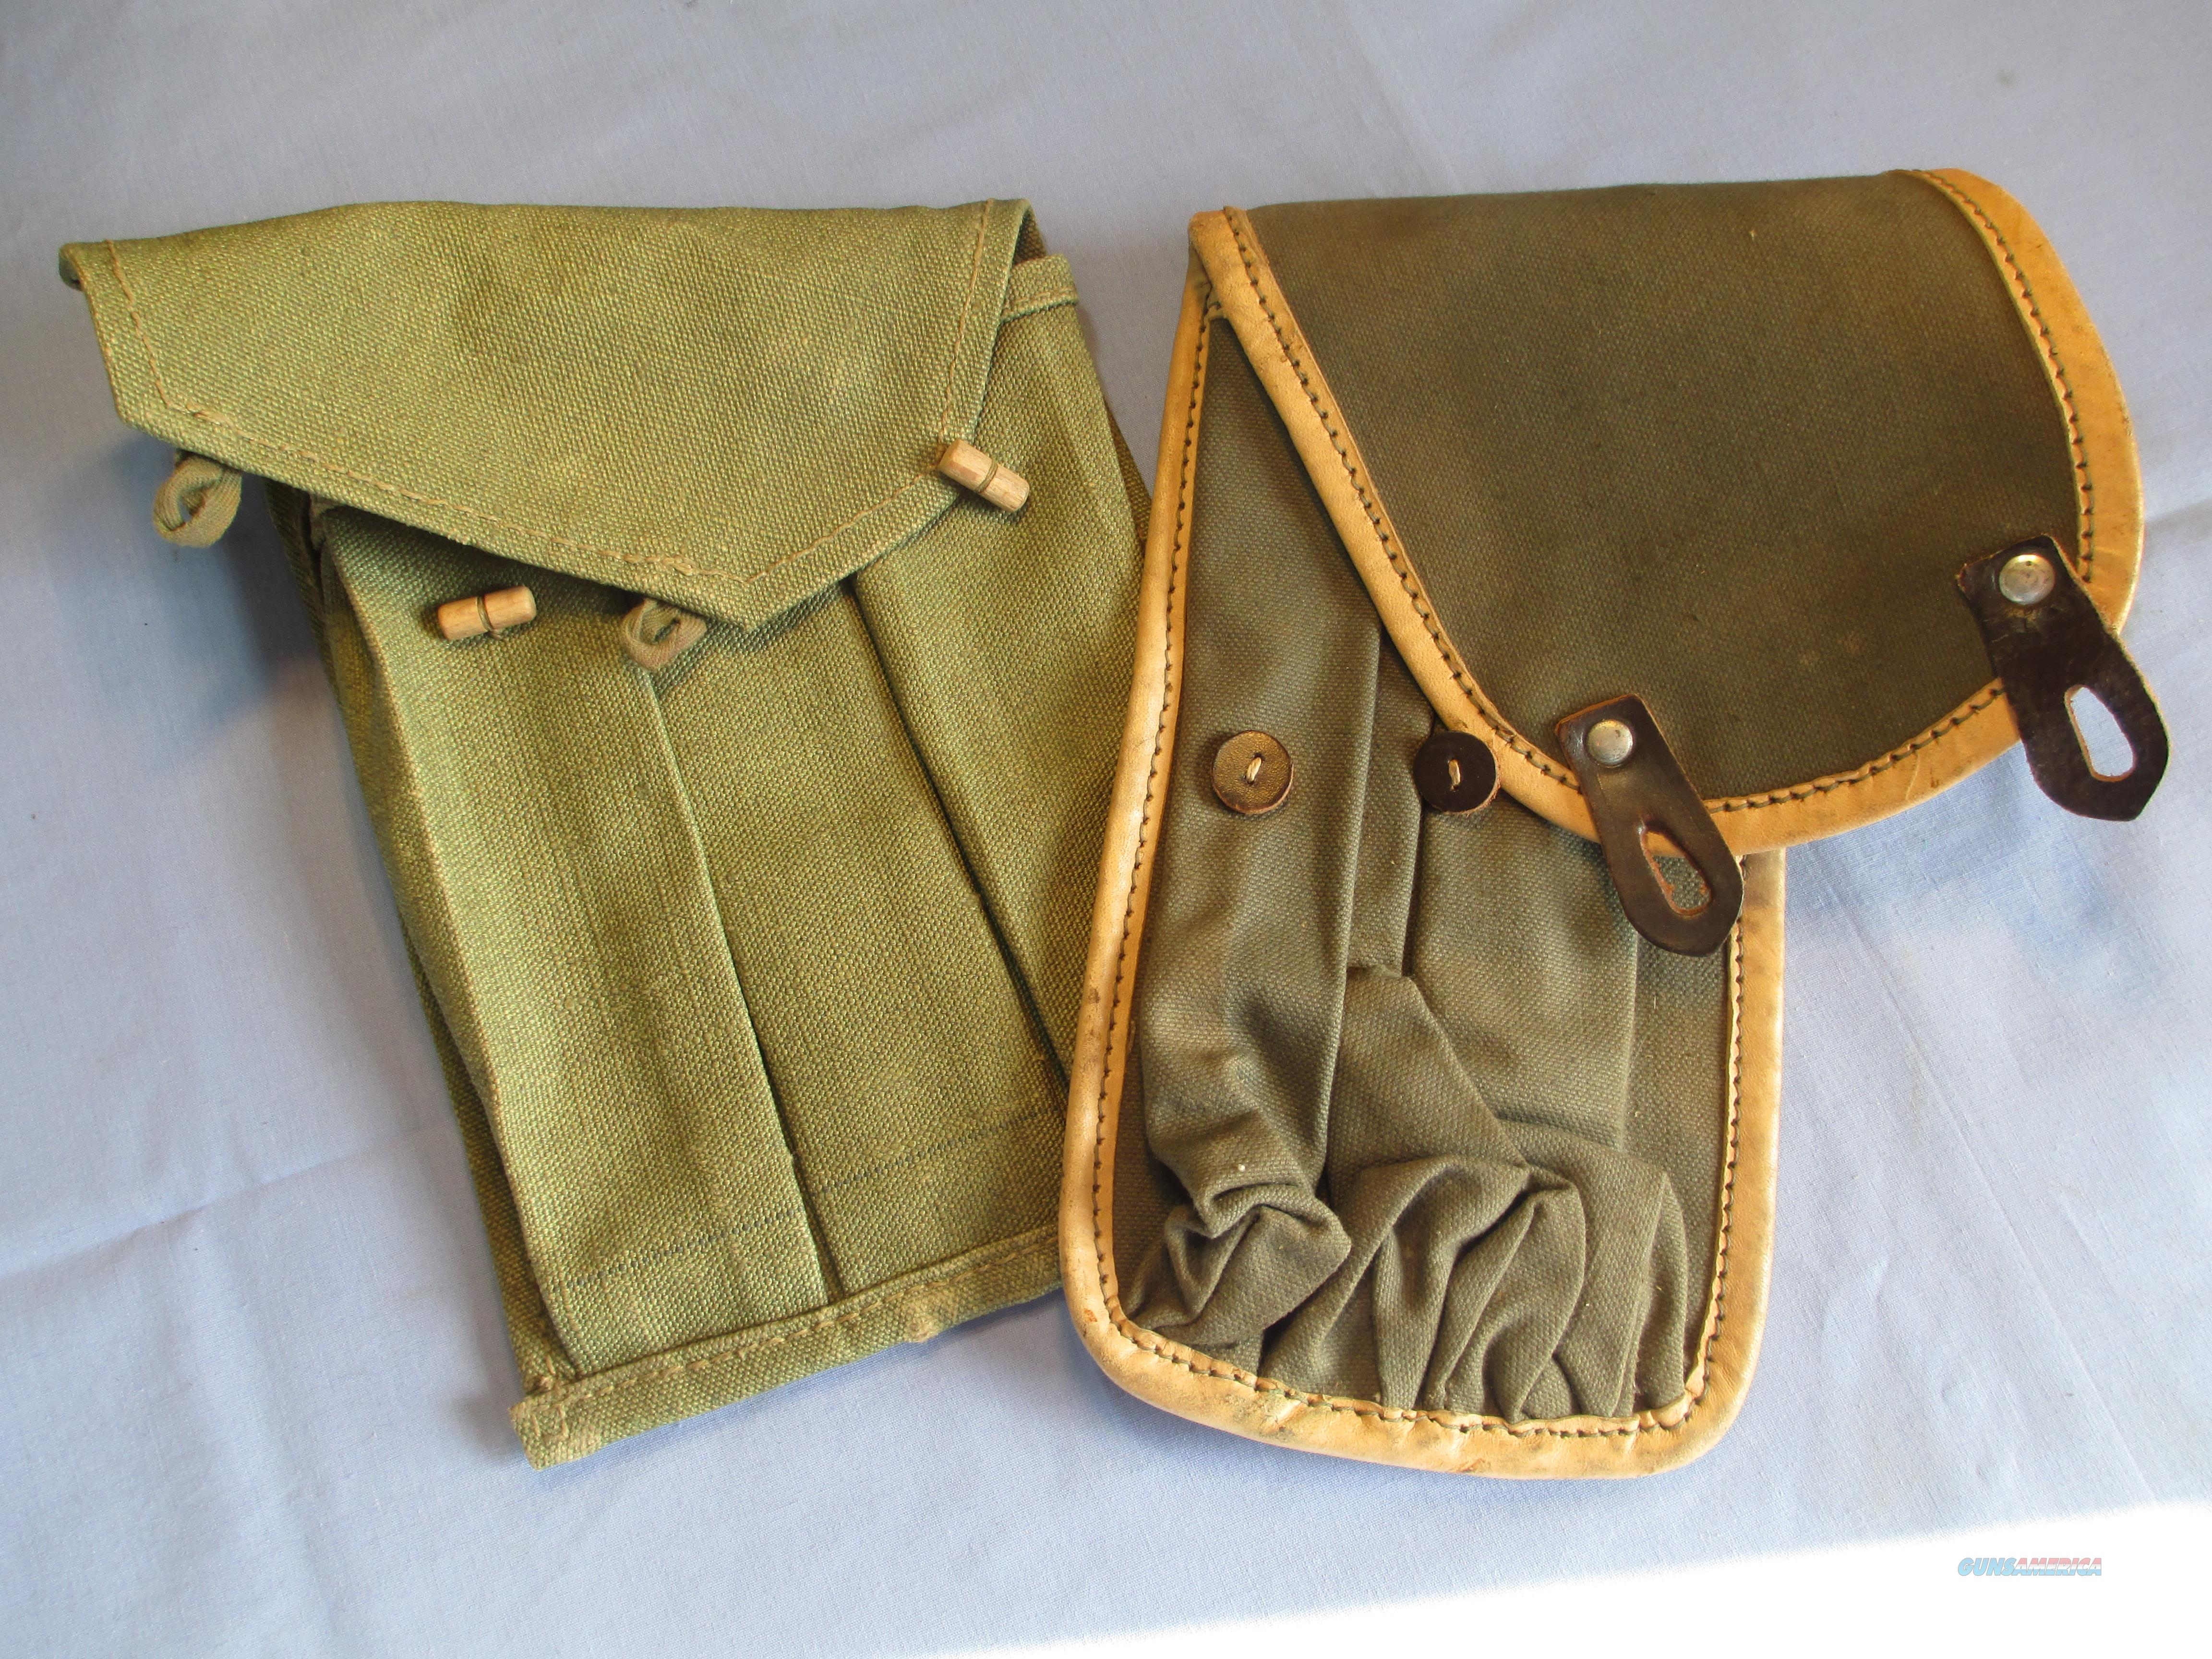 Original Soviet PPSH-41 PPS-43  magazine pouch Marked AND SUDAEV & SHPAGIN Magazine Ammo POUCH Canvas CASE Bag PPS-43, PPSh-41   Non-Guns > Magazines & Clips > Subgun Magazines > Clips > Other